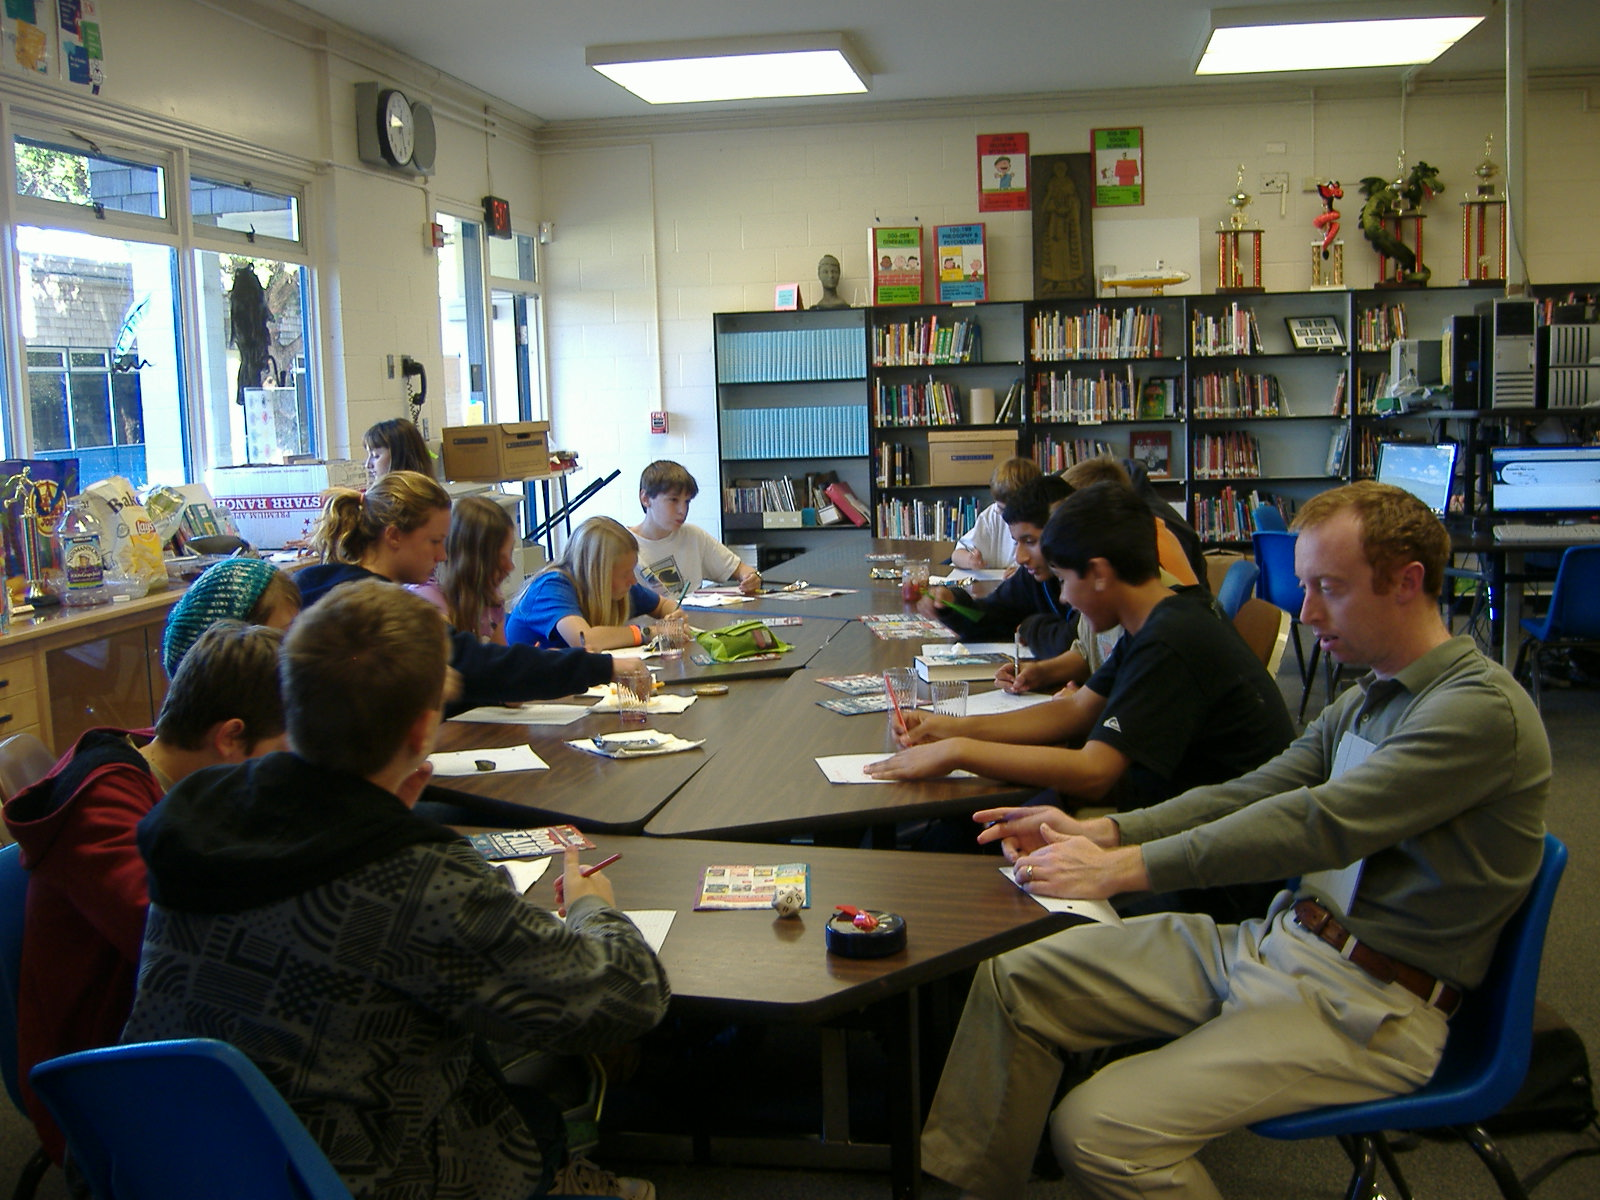 Mr. Simms & group play Scattegories